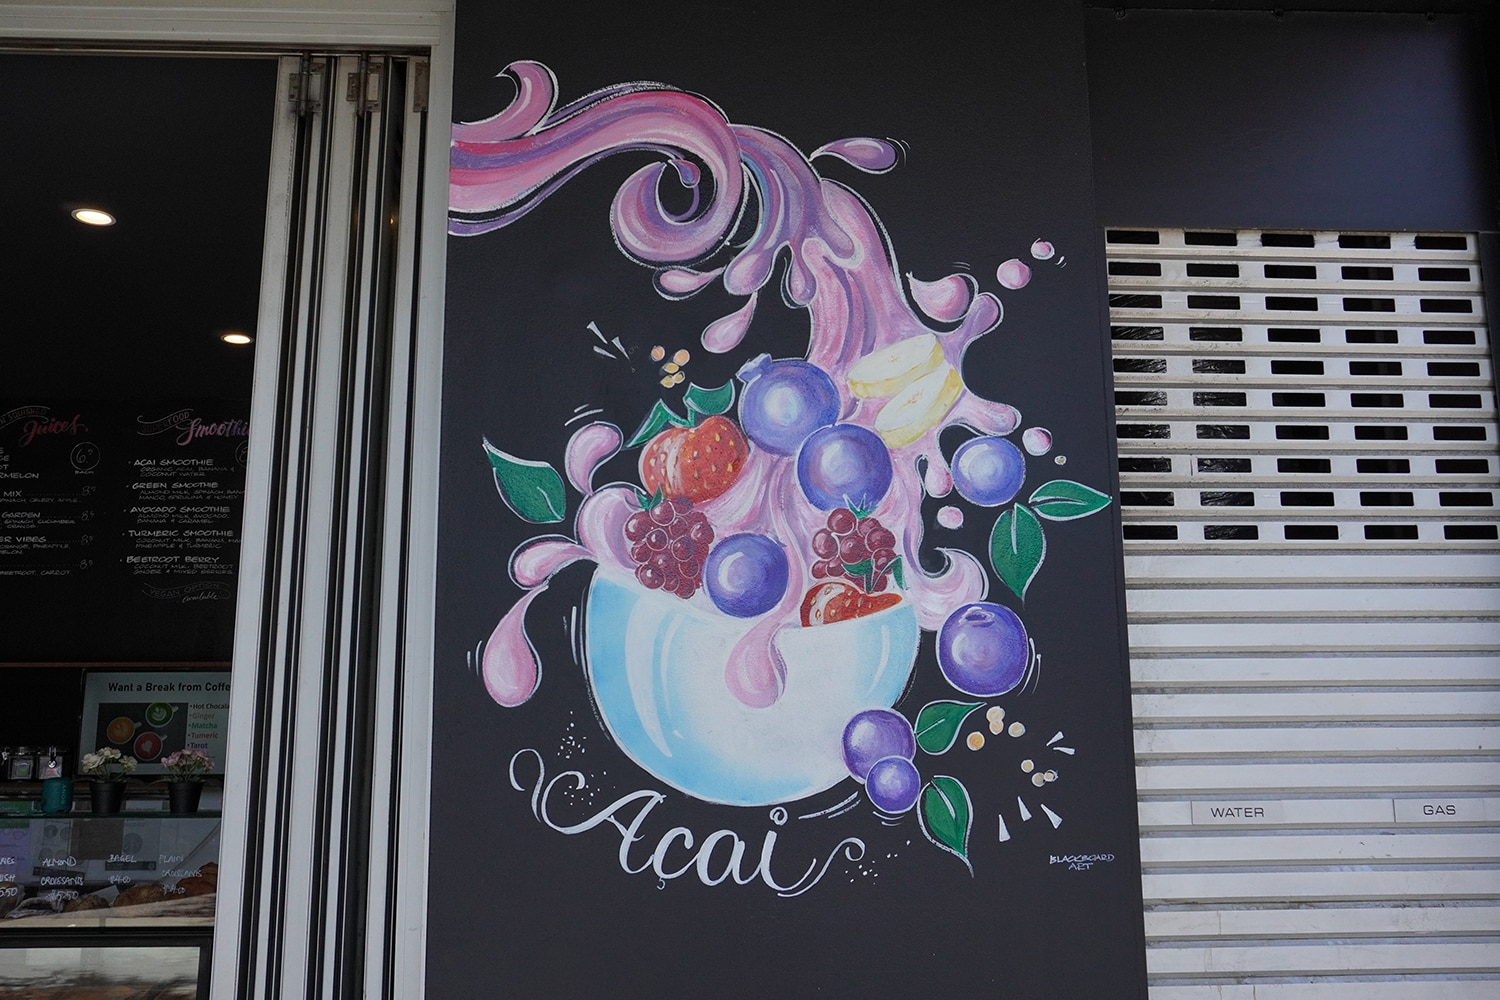 Brew Berry Cafe Surry Hills Cafes Bars Sydney Art Out Live (1) Cheryl McLean